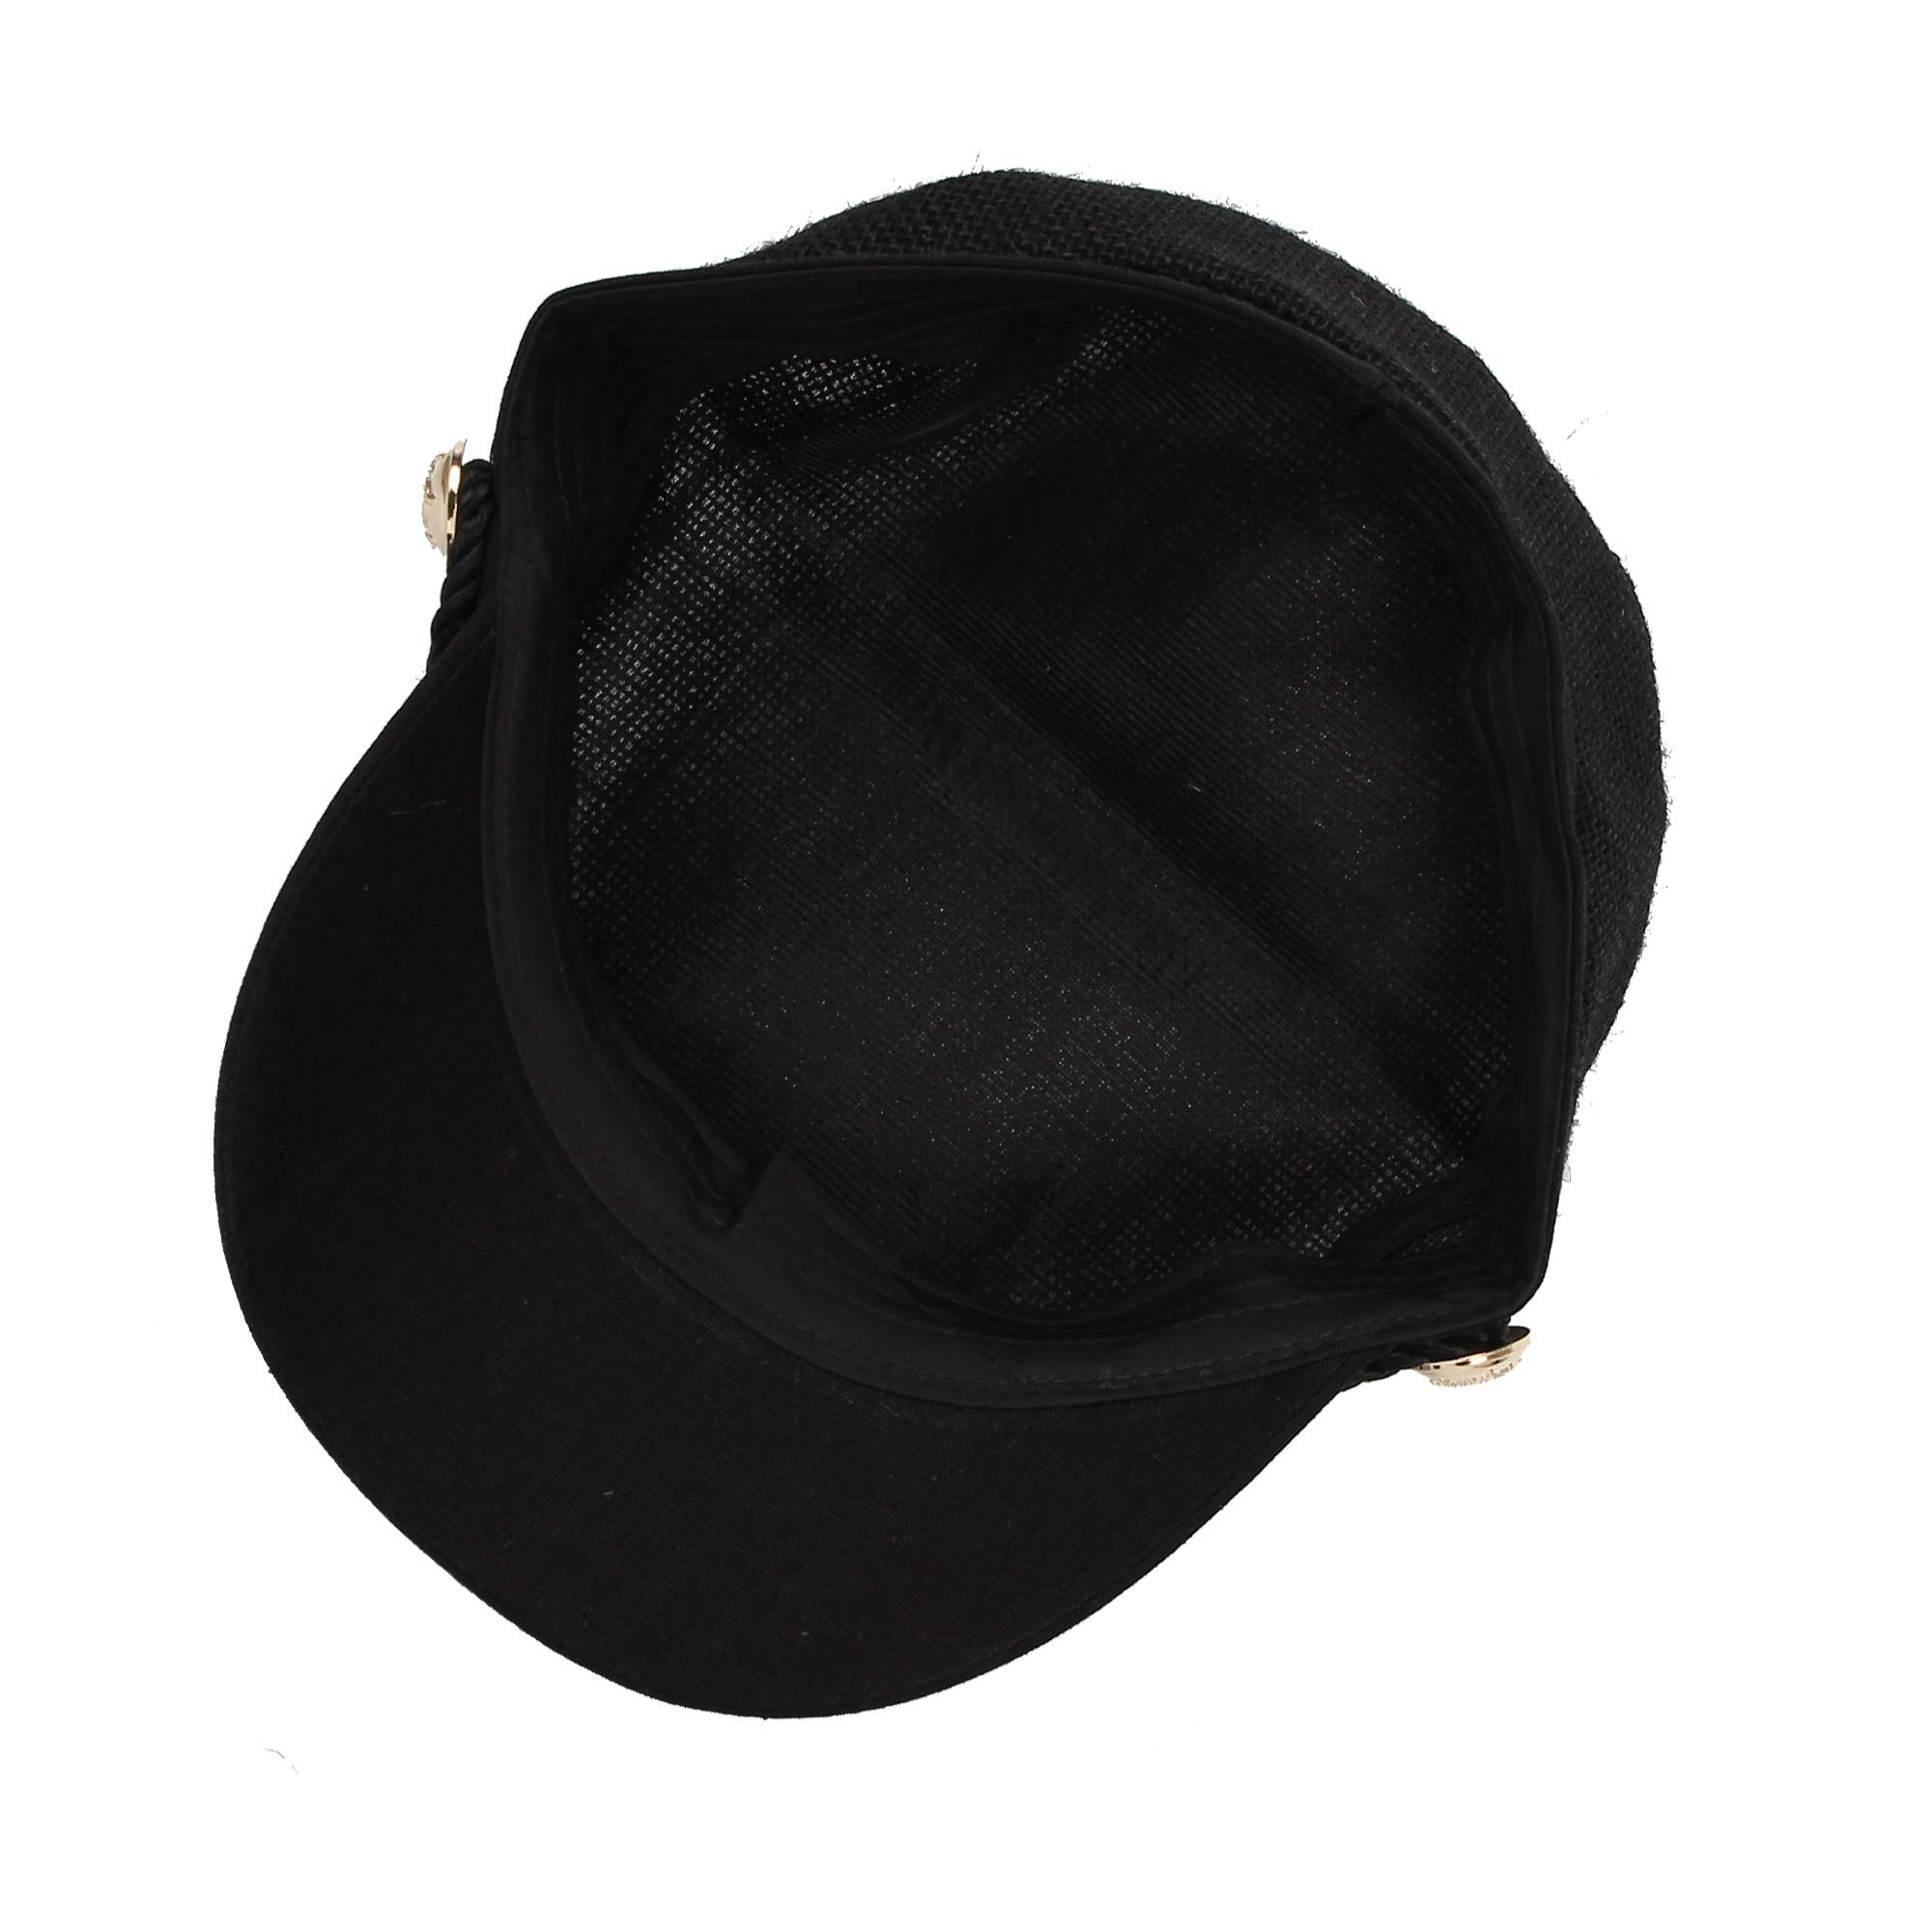 WITHMOONS Women Linen Newsboy Cap Mesh Breathable Summer Hat MUG1164 (Black) by WITHMOONS (Image #6)